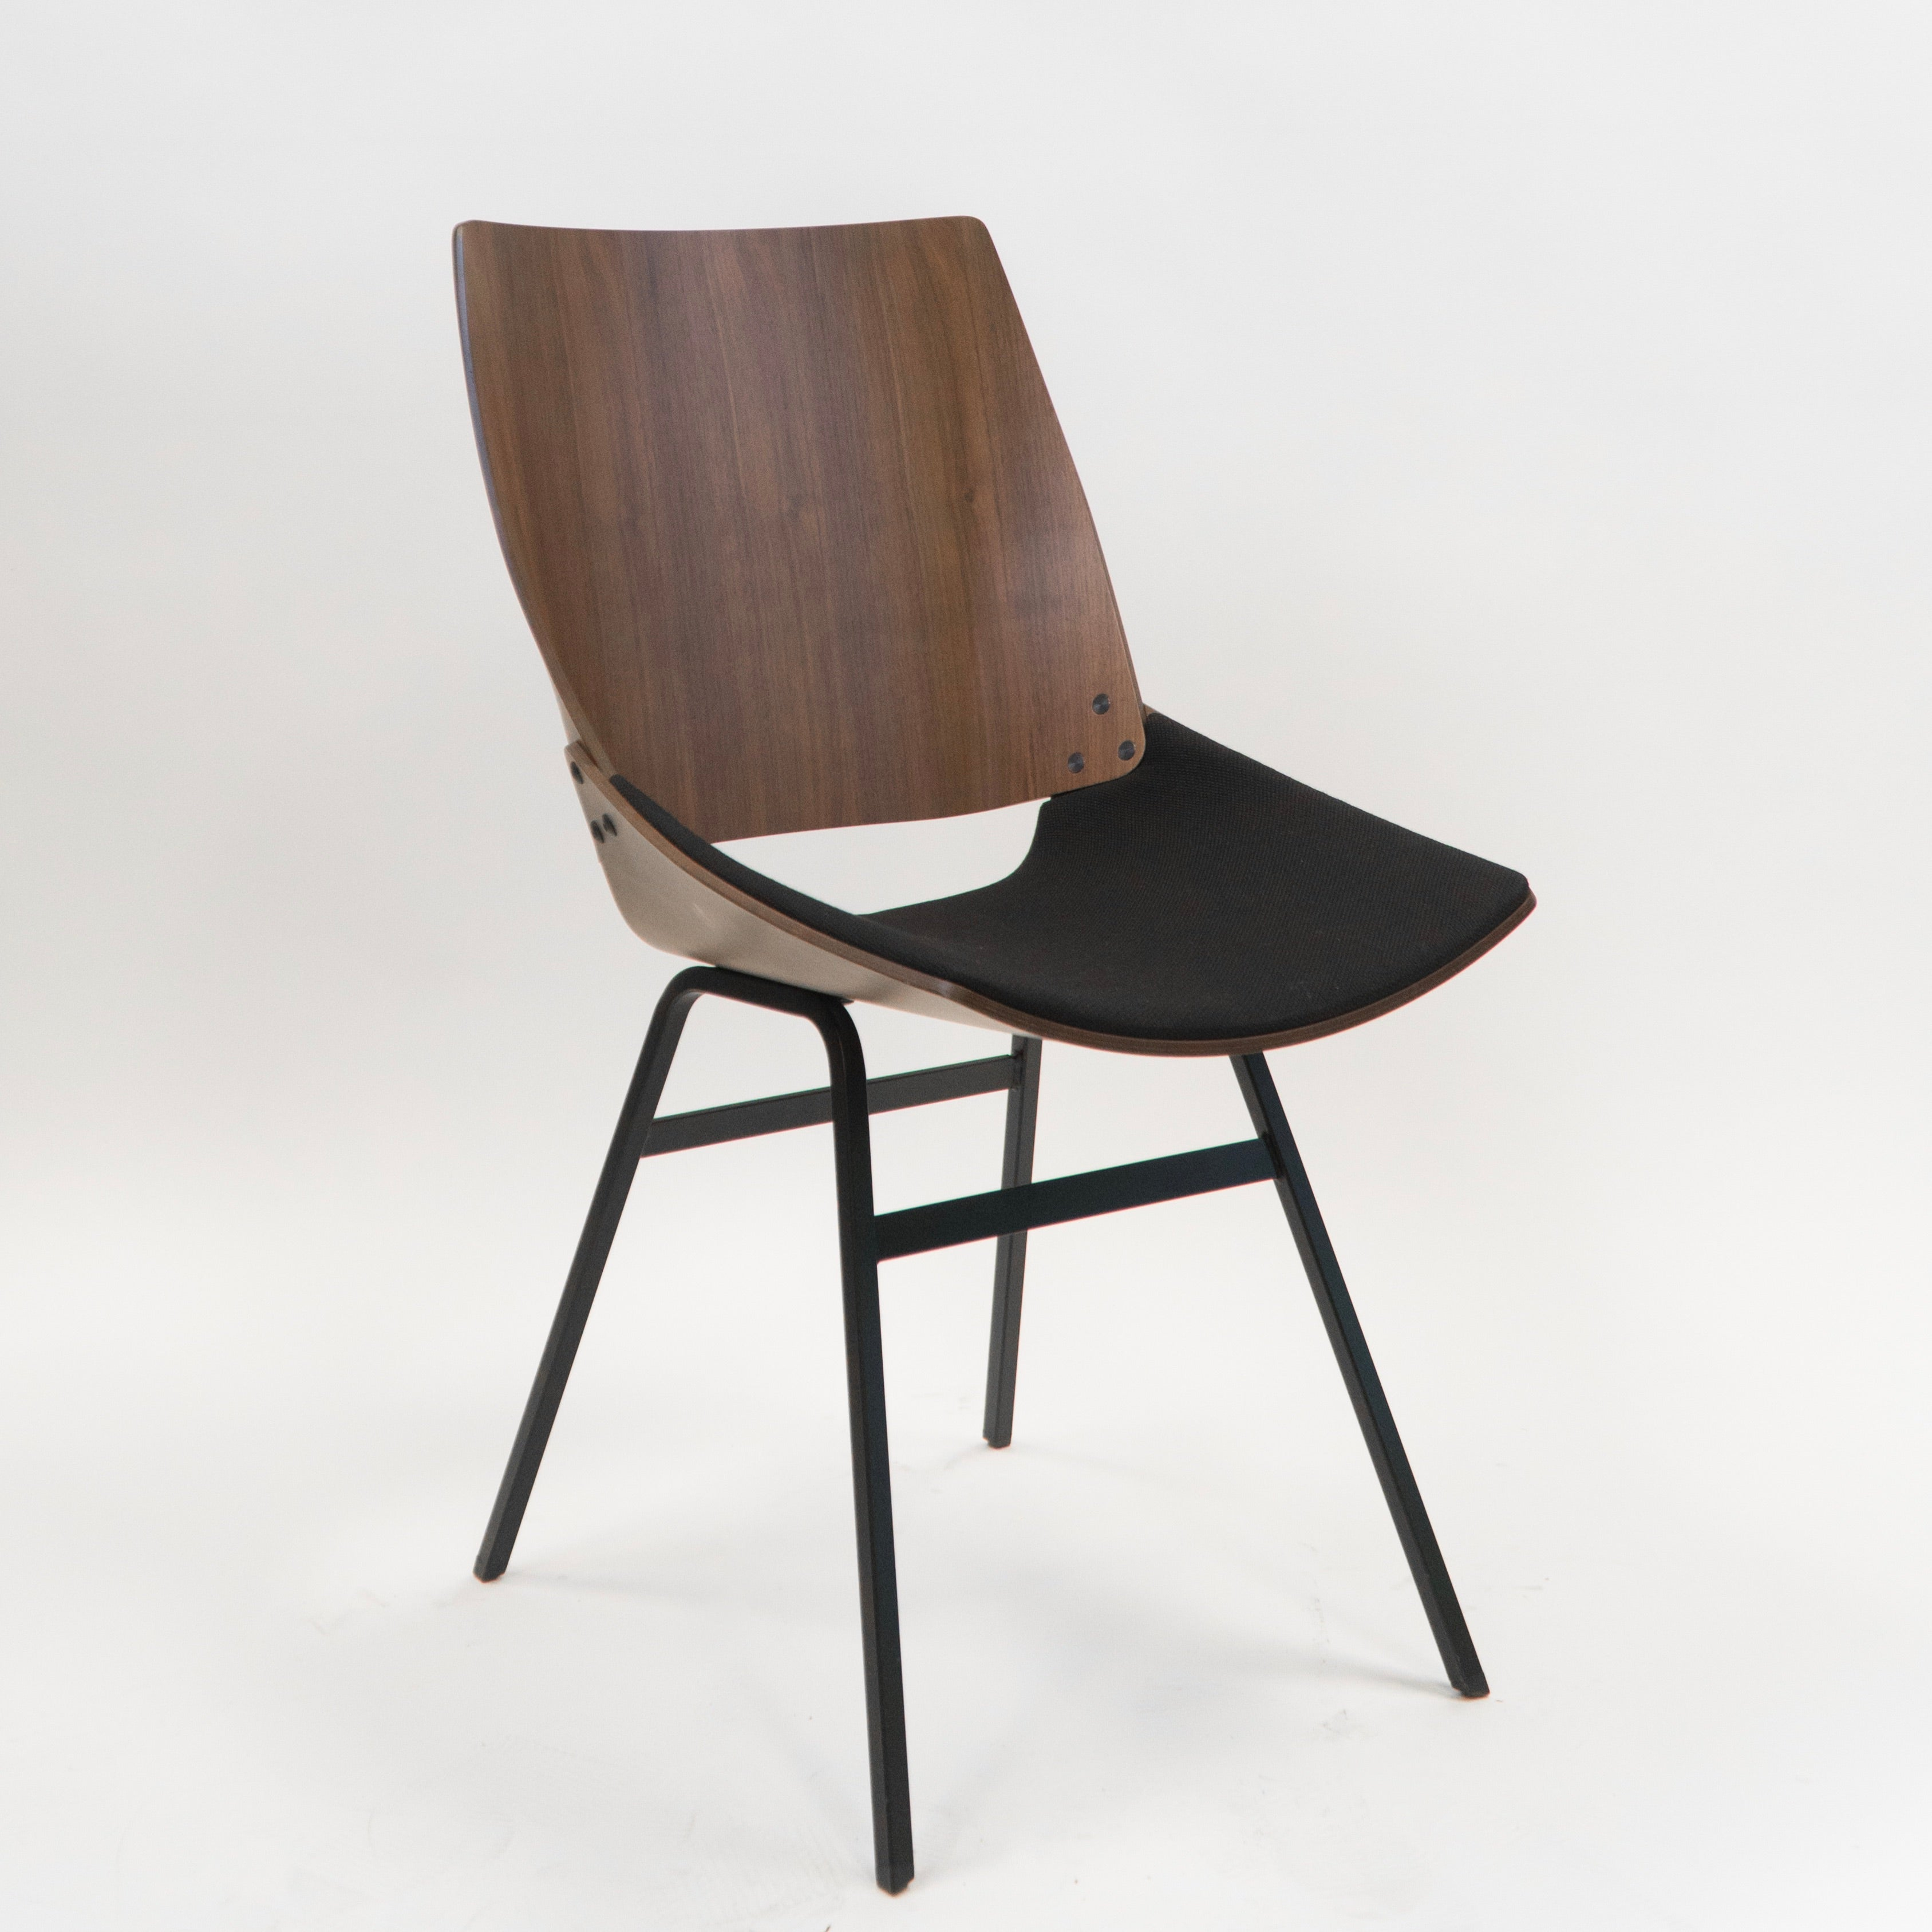 Shell Chair natural walnut upholstered textile seat Rohi black